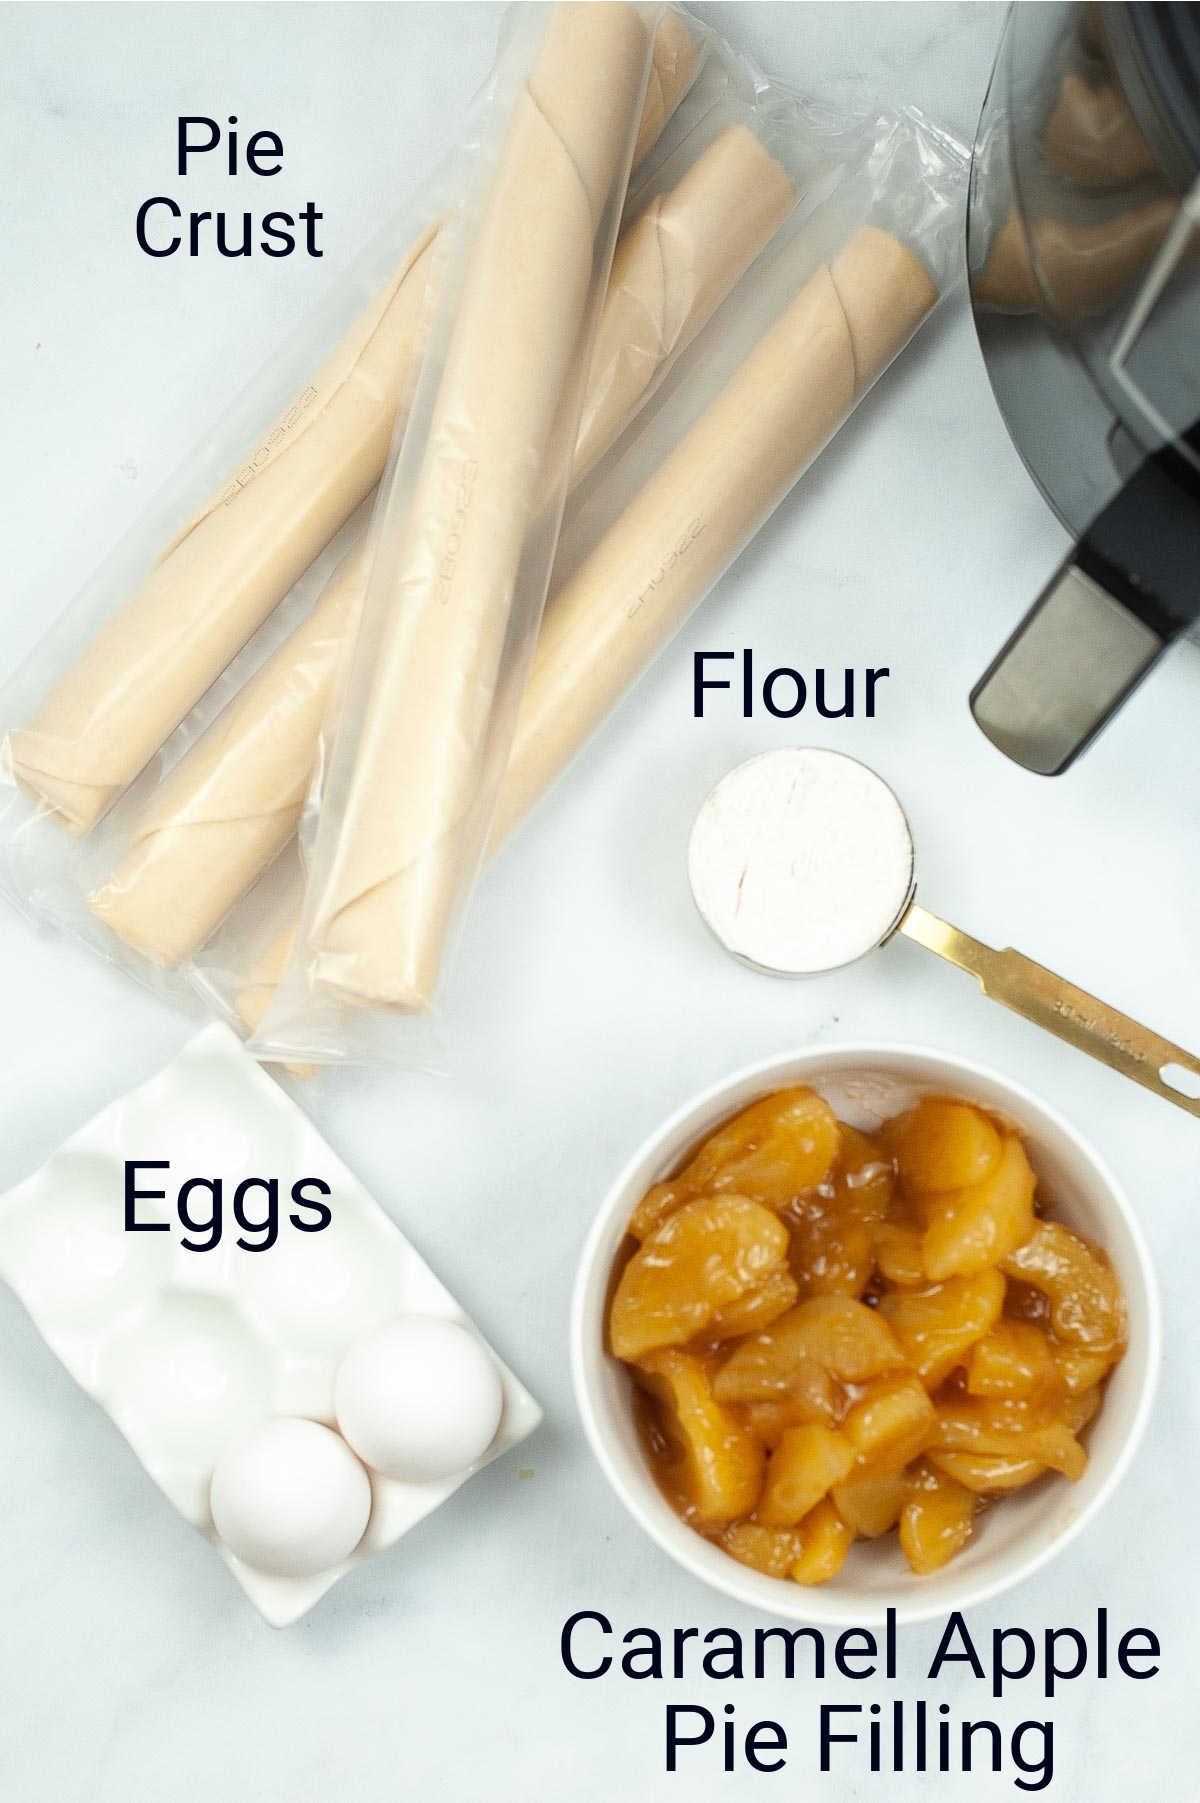 ingredient photo showing the pie crust, flour, eggs and pie filling on a counter with labels.